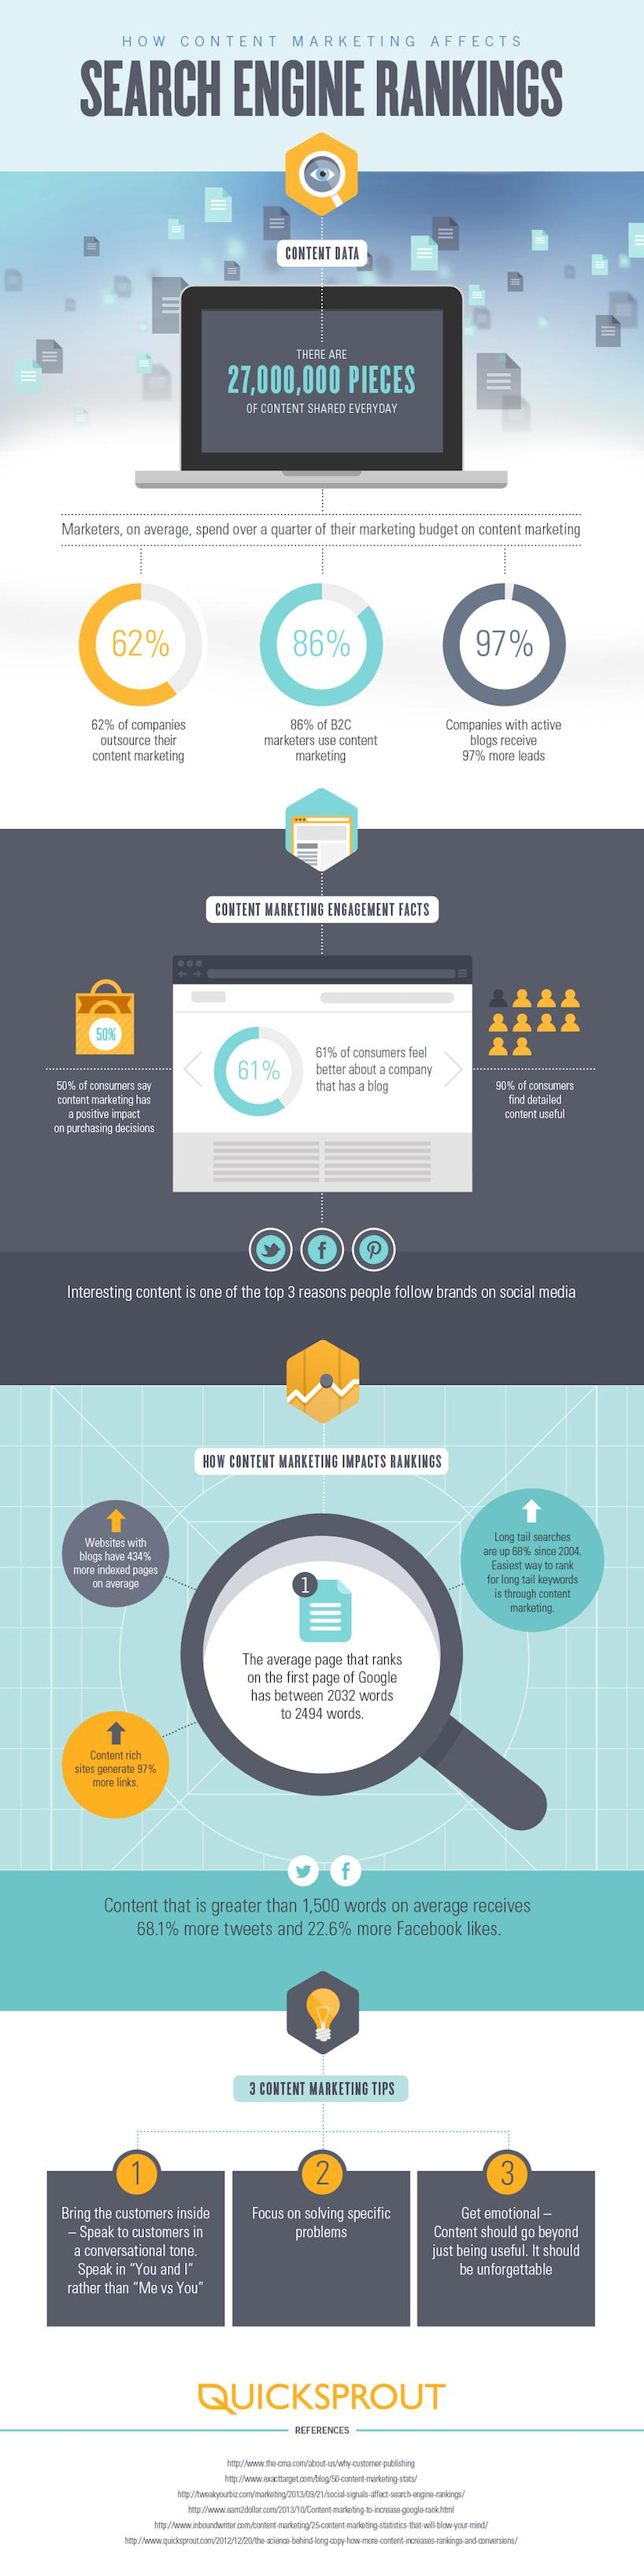 Content Marketing & Search Engine Marketing [INFOGRAPHIC]